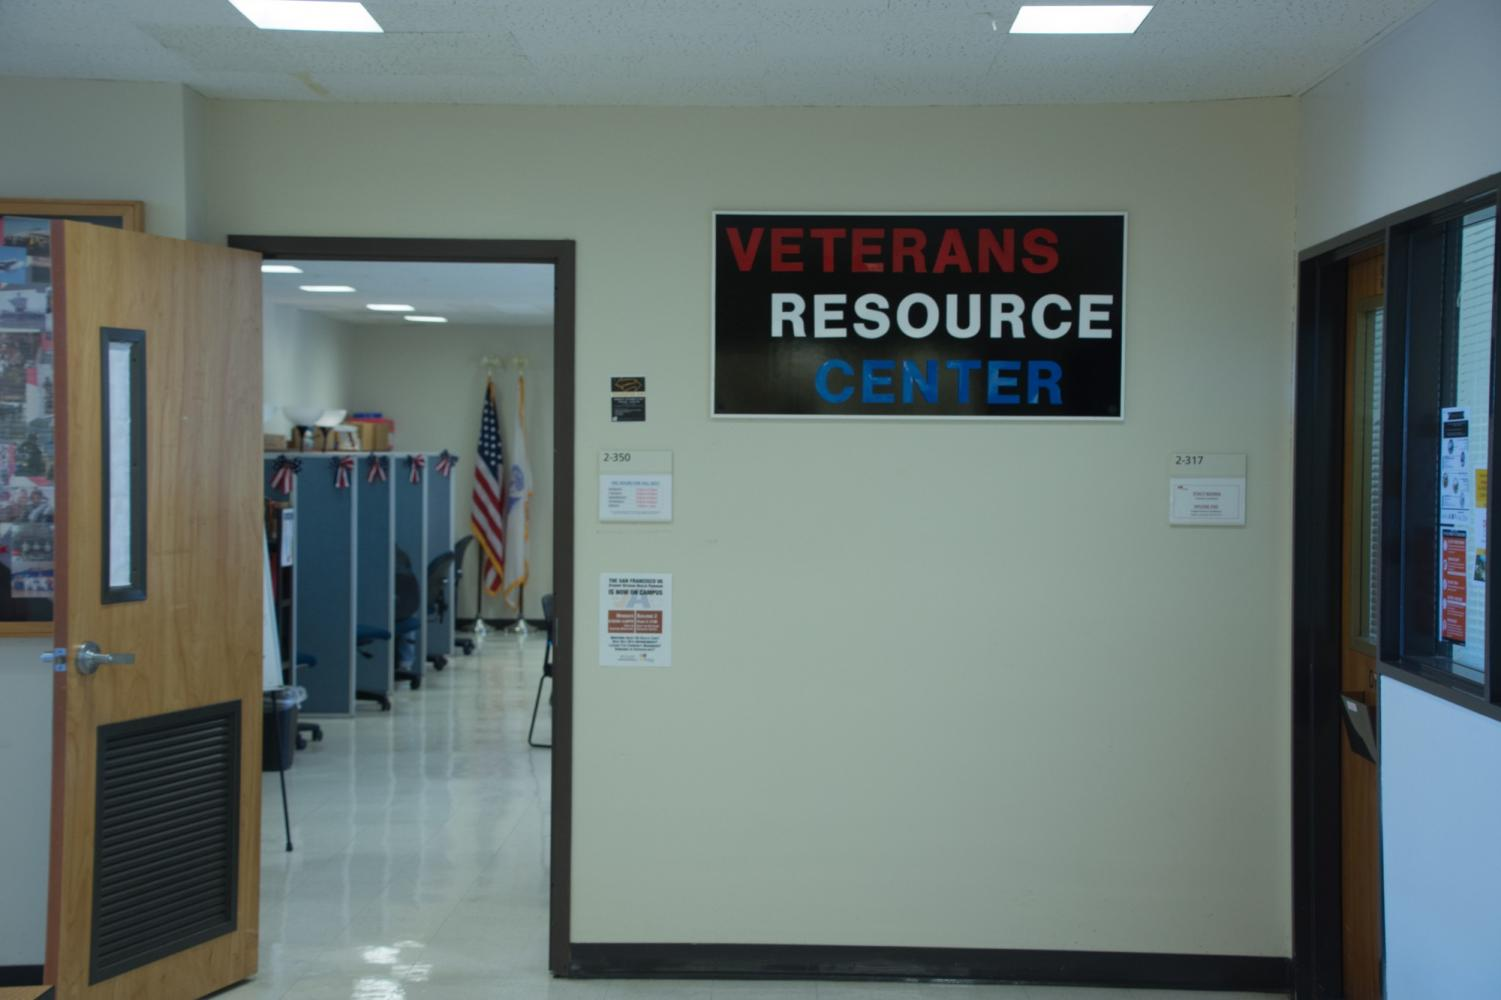 The Veterans Resource Center at Skyline College. Photo credit: Mark David Magat